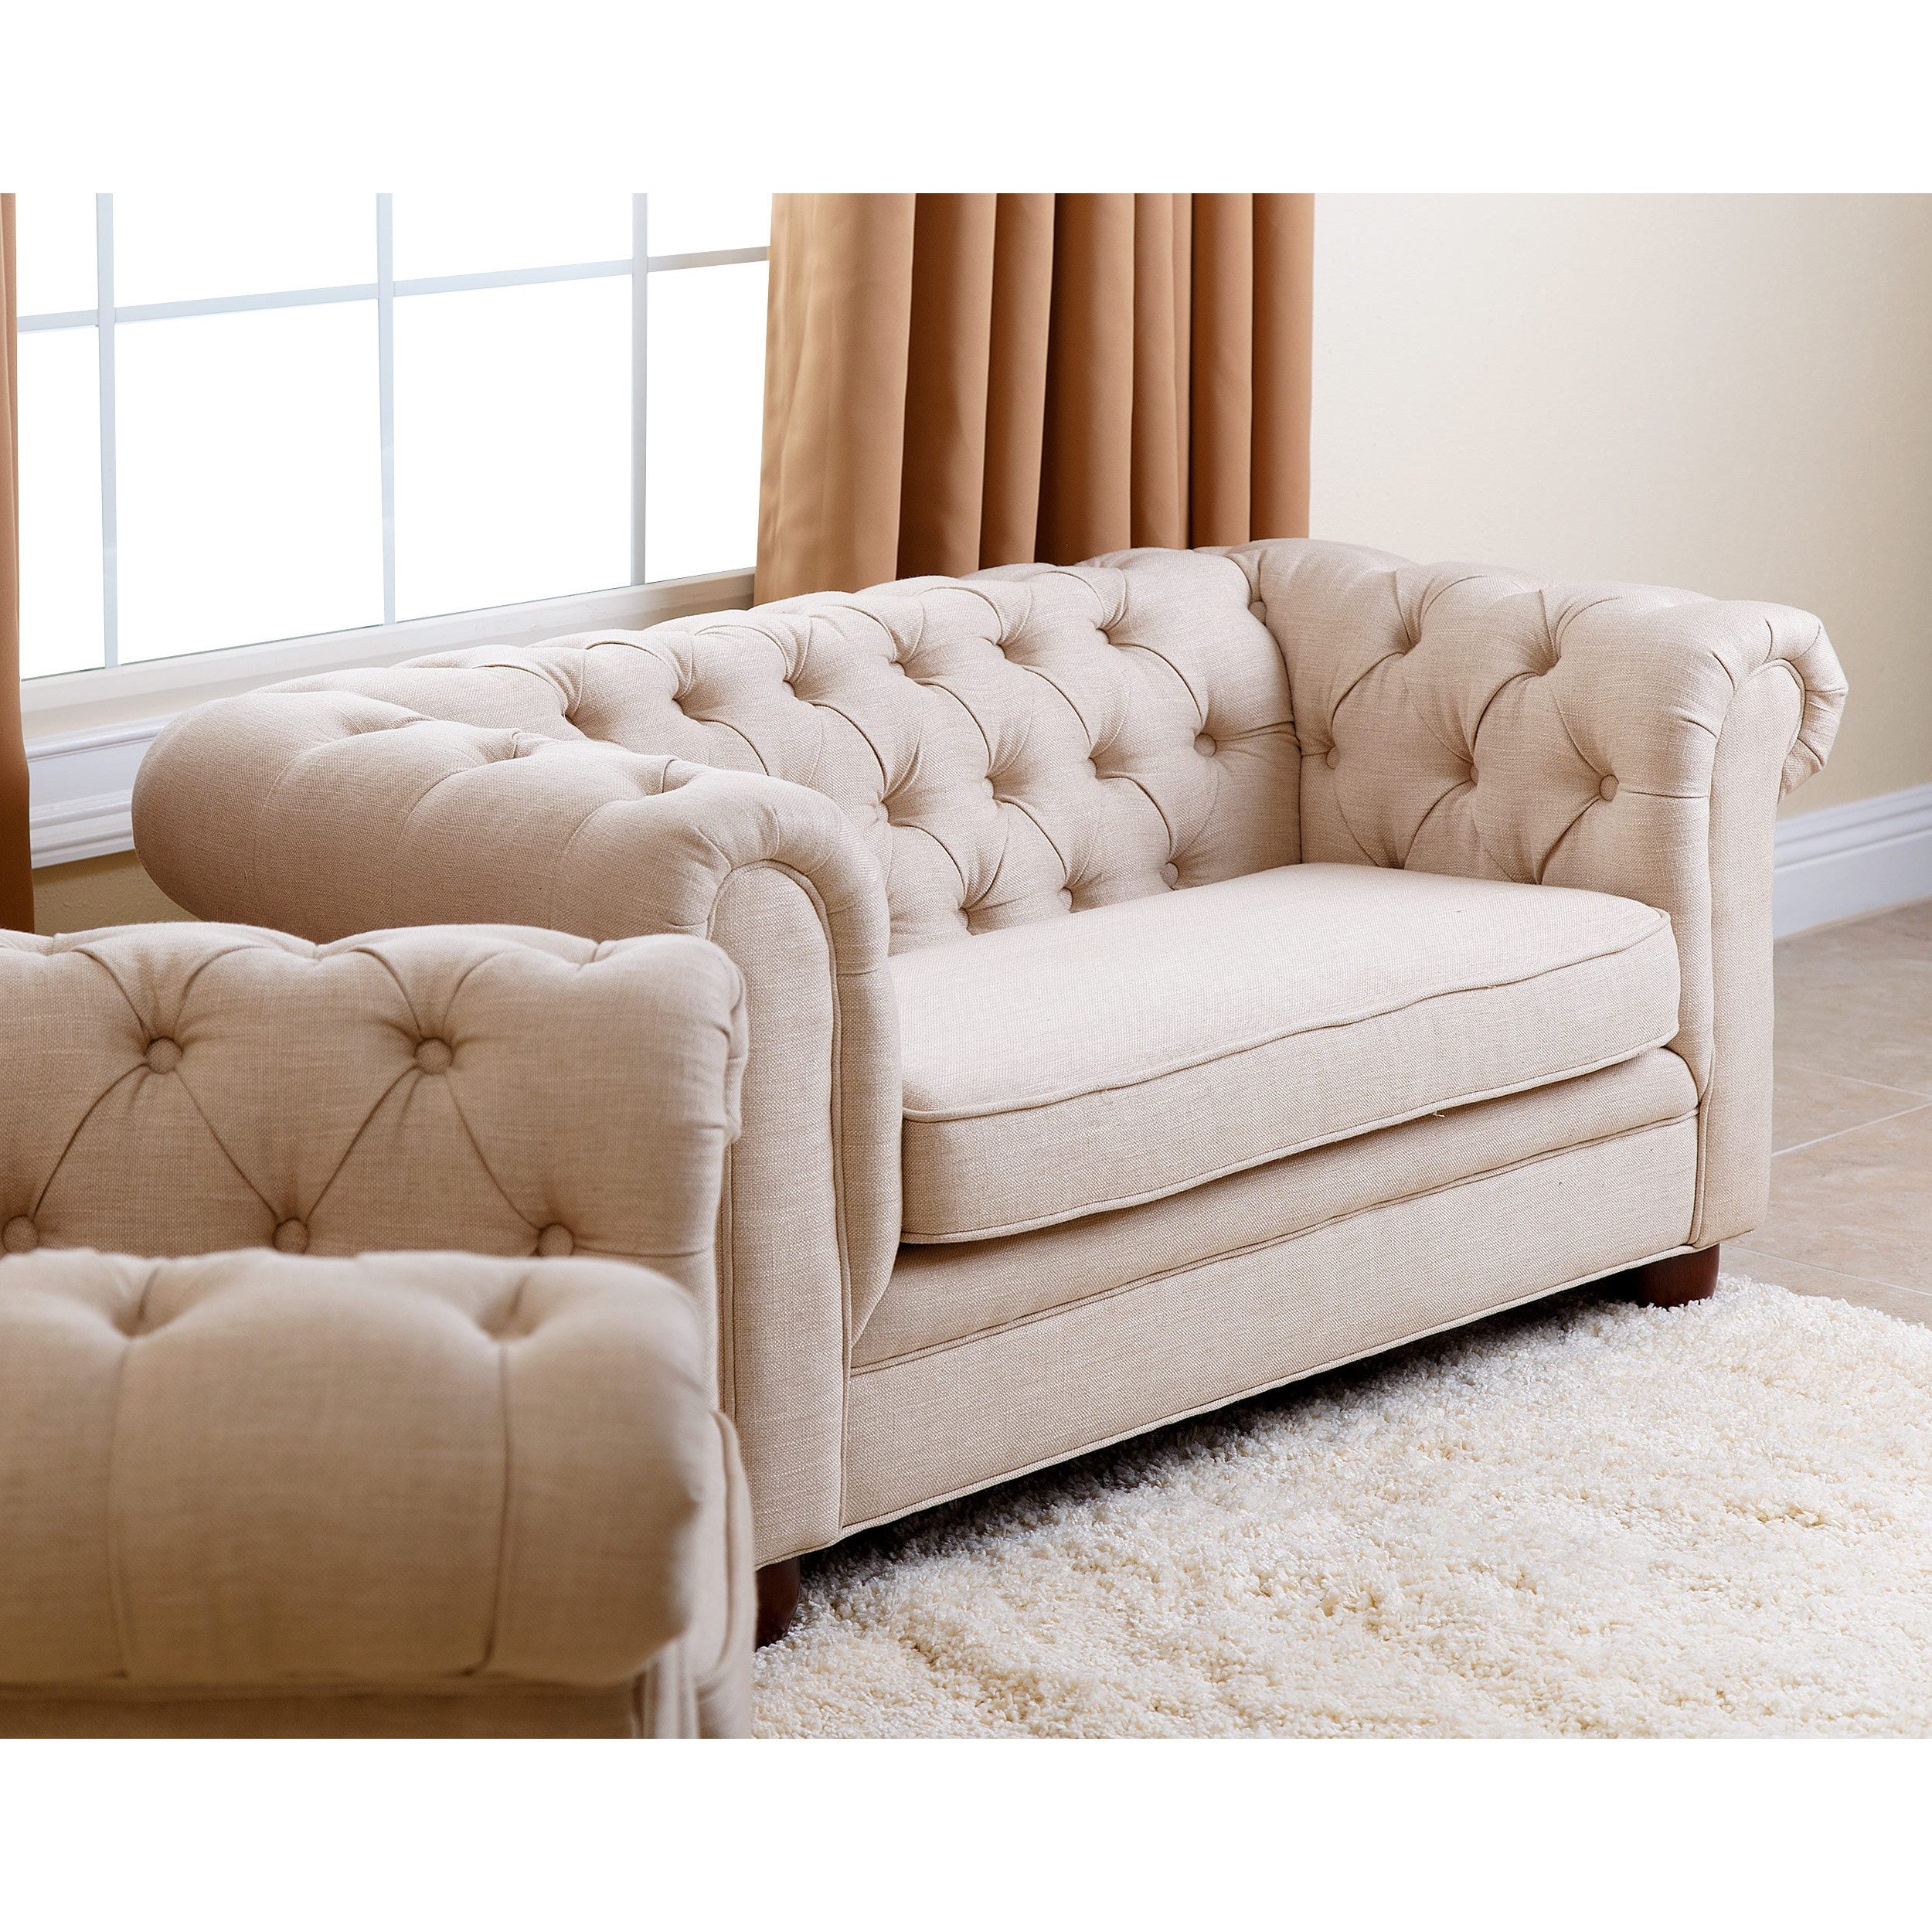 Mini Couch Abbyson Kids Beige Linen Chesterfield Rj Mini Sofa